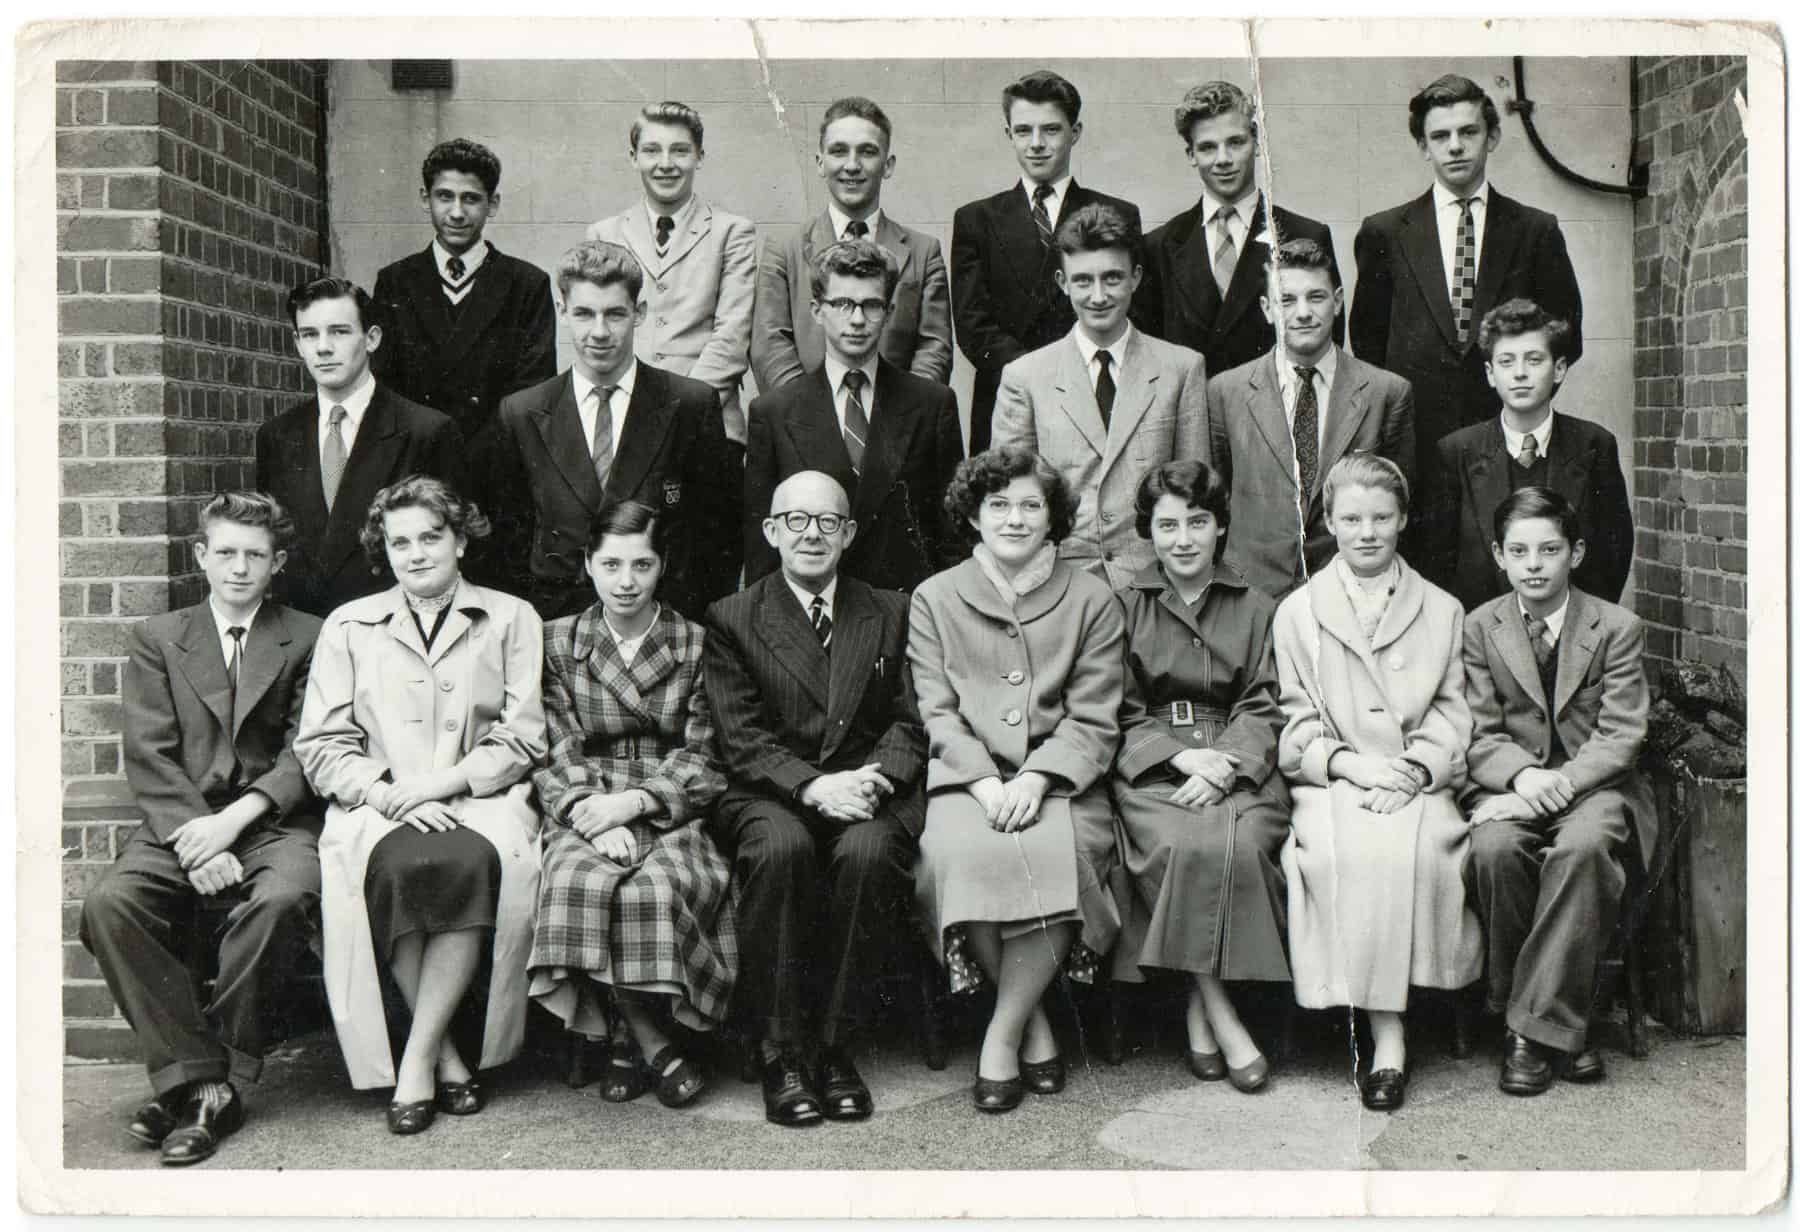 Gary: This is a group photograph from 1956 when I started as an apprentice at Chance Brothers in Smethwick. All the apprentices who were taken on at that particular time had their photograph taken with a managing director. There was all different trades and office staff. I am in the middle row, third from the left.